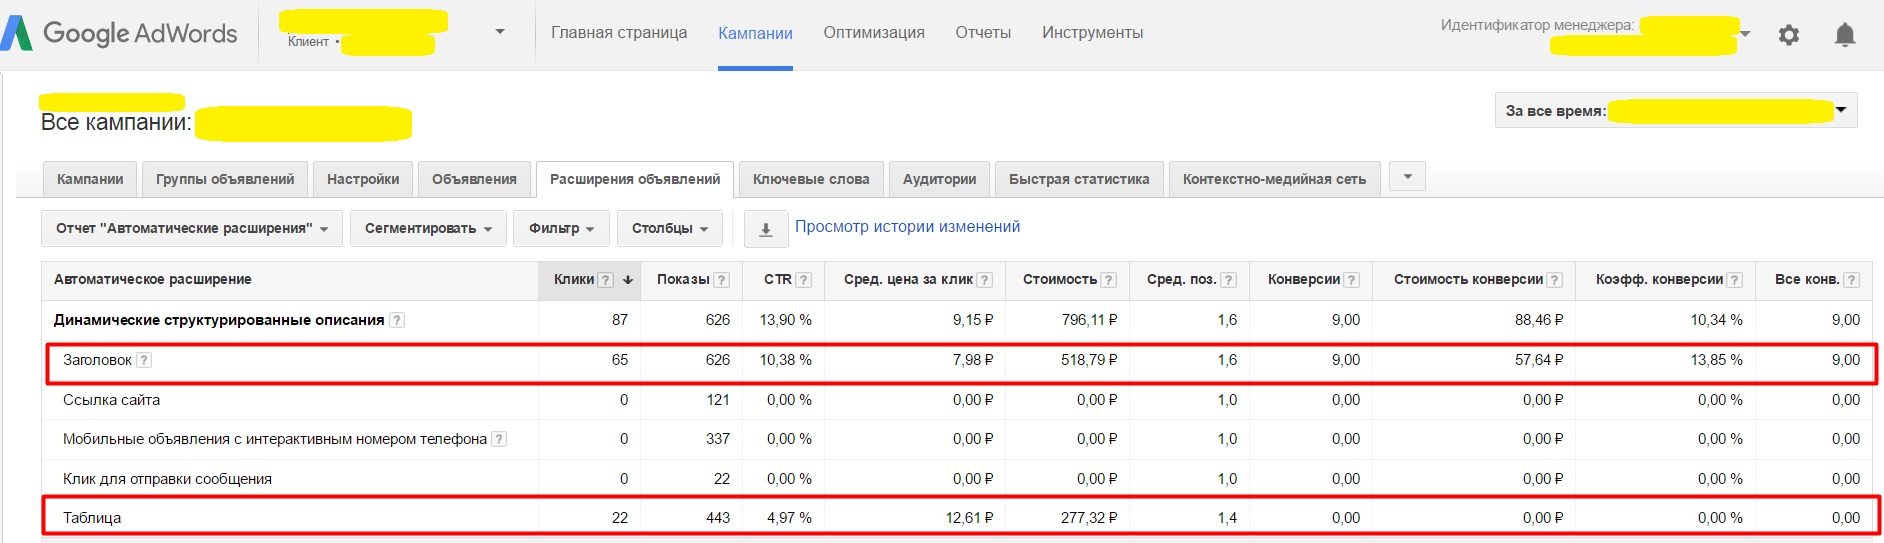 _Отчет Место клика Автоматические расширения AdWords